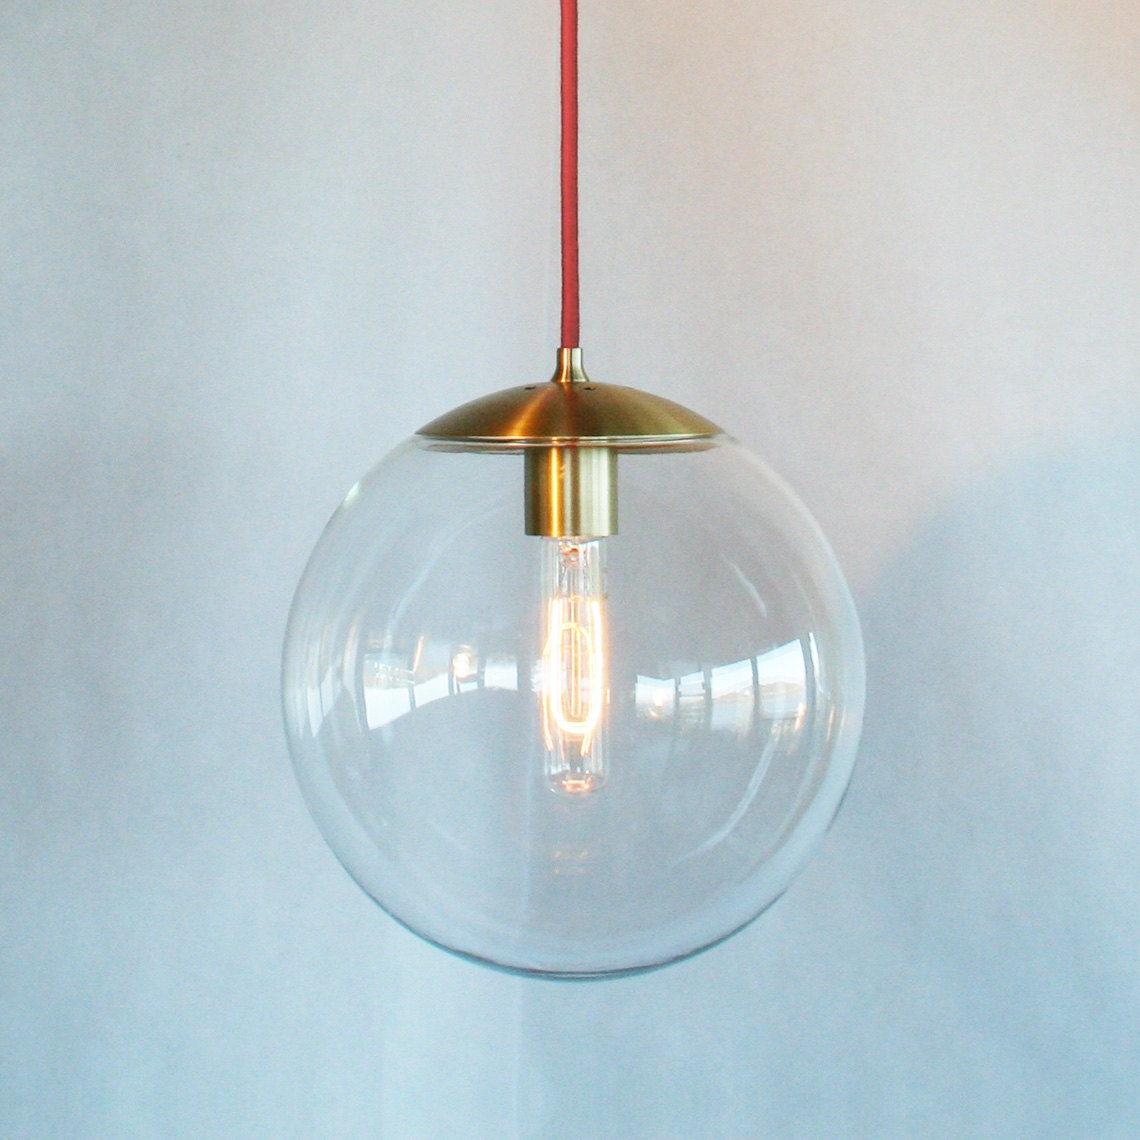 Modern mid century globe pendant light clear 10 globe for Modern island pendant lighting